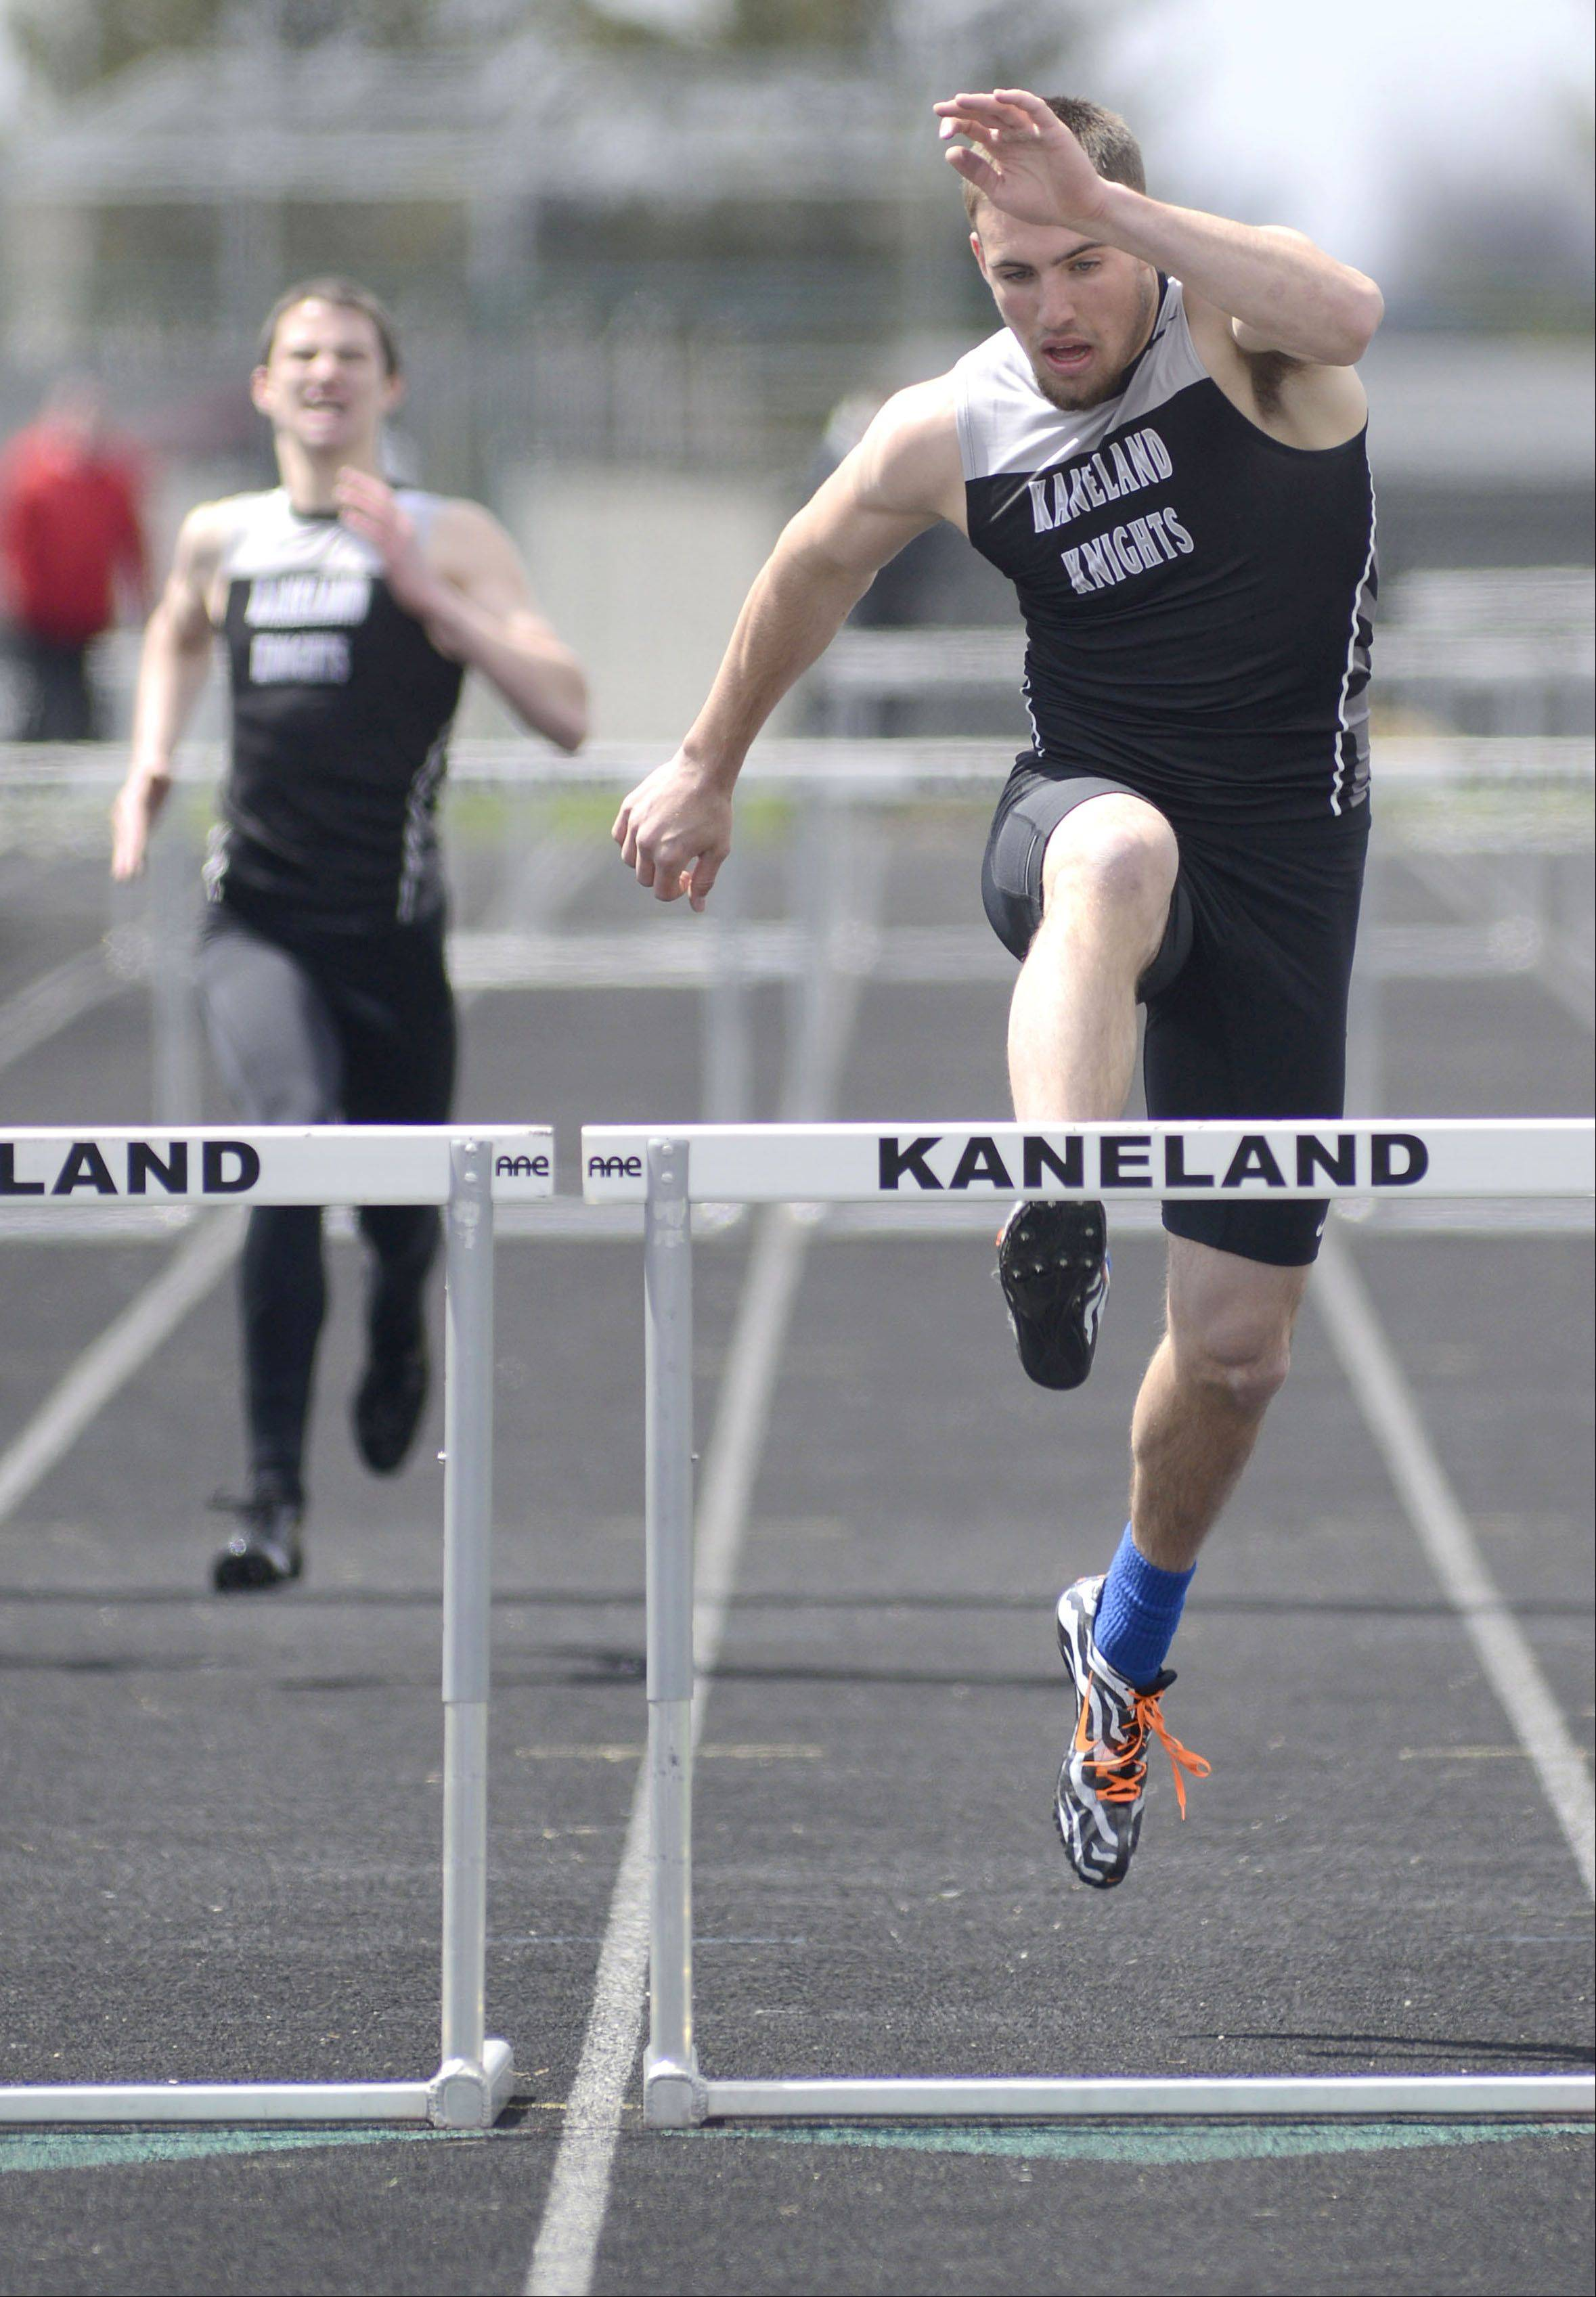 Kaneland's Dylan Nauert in the final heat of the 300 meter intermediate hurdles at the Kaneland meet on Saturday, April 20.